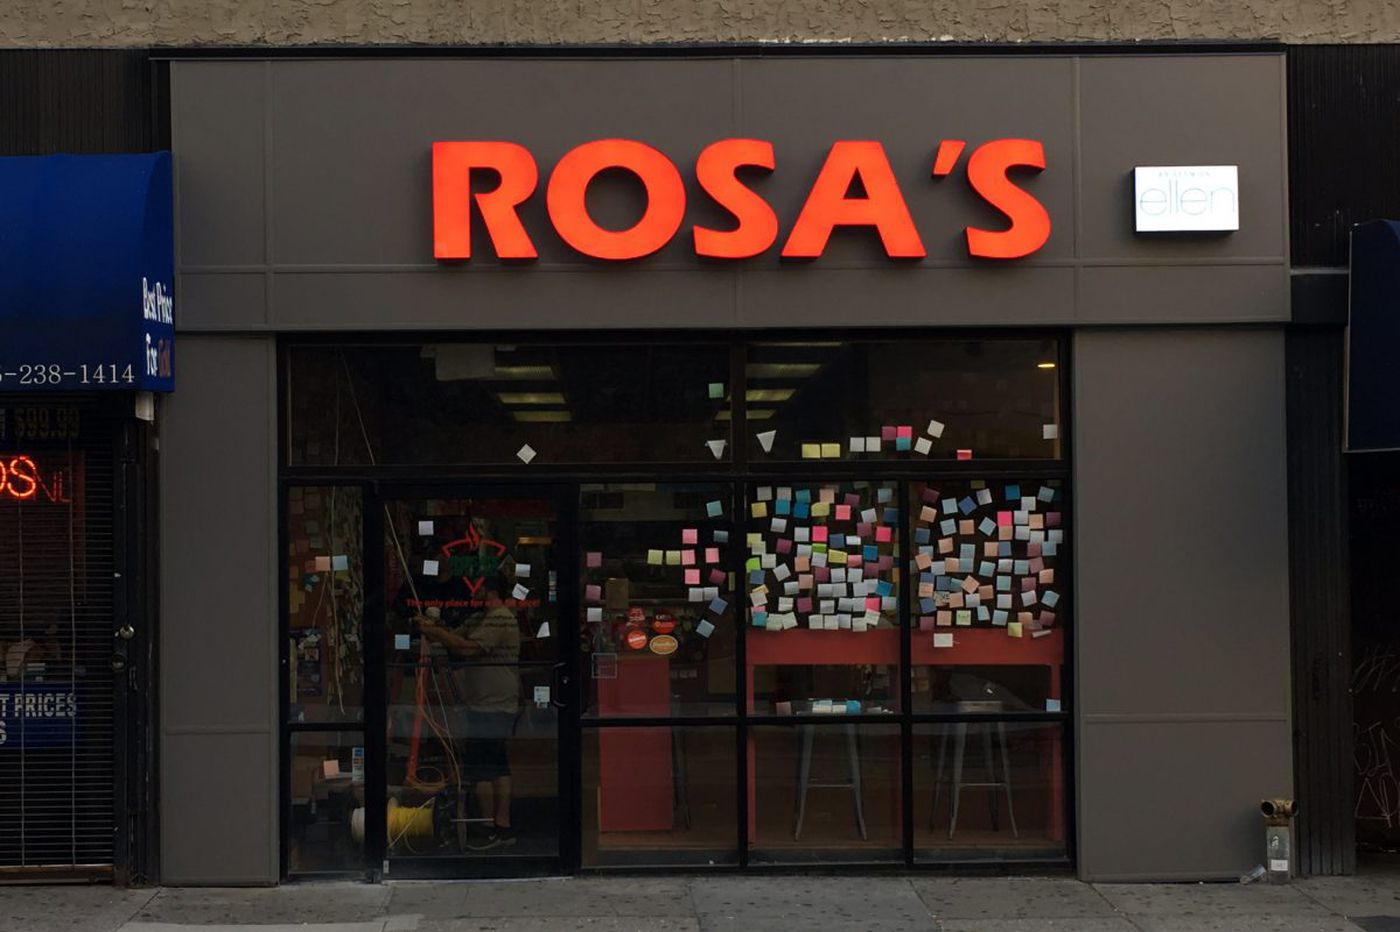 Rosa's, the pay-it-forward pizzeria, to raise slice prices